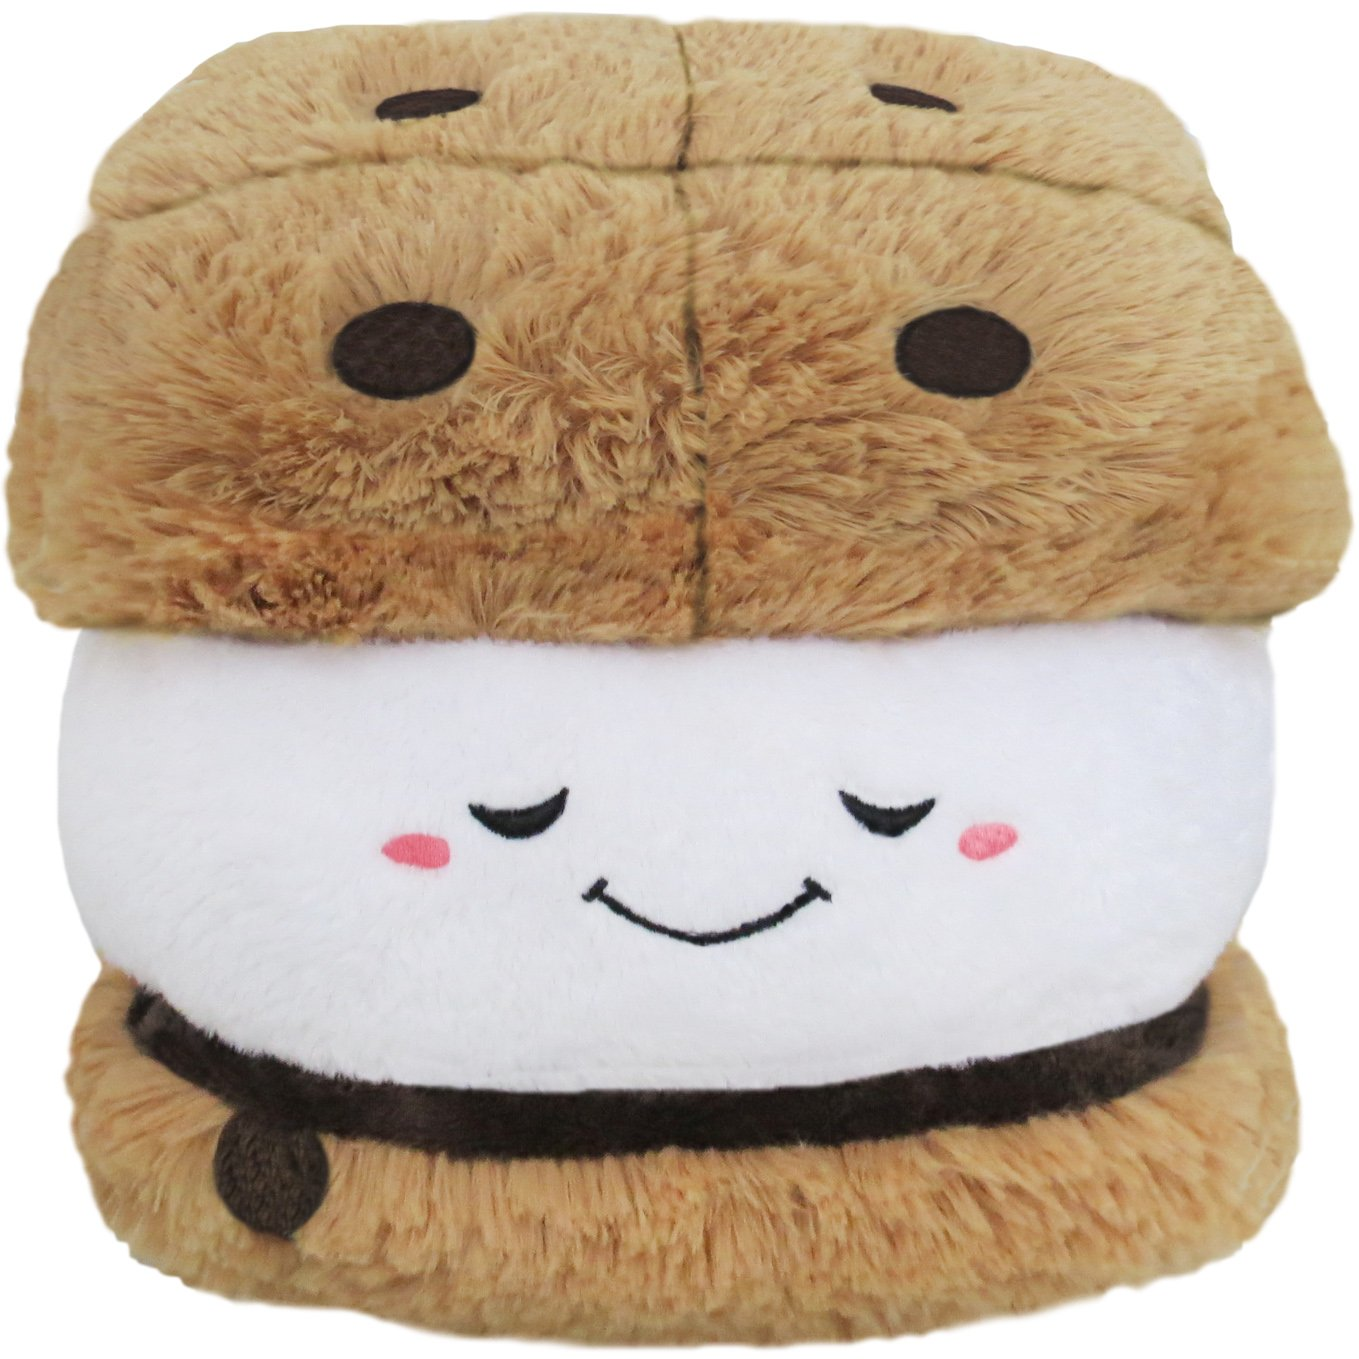 Squishable / Mini Smore - 7'' Plush by Squishable (Image #2)